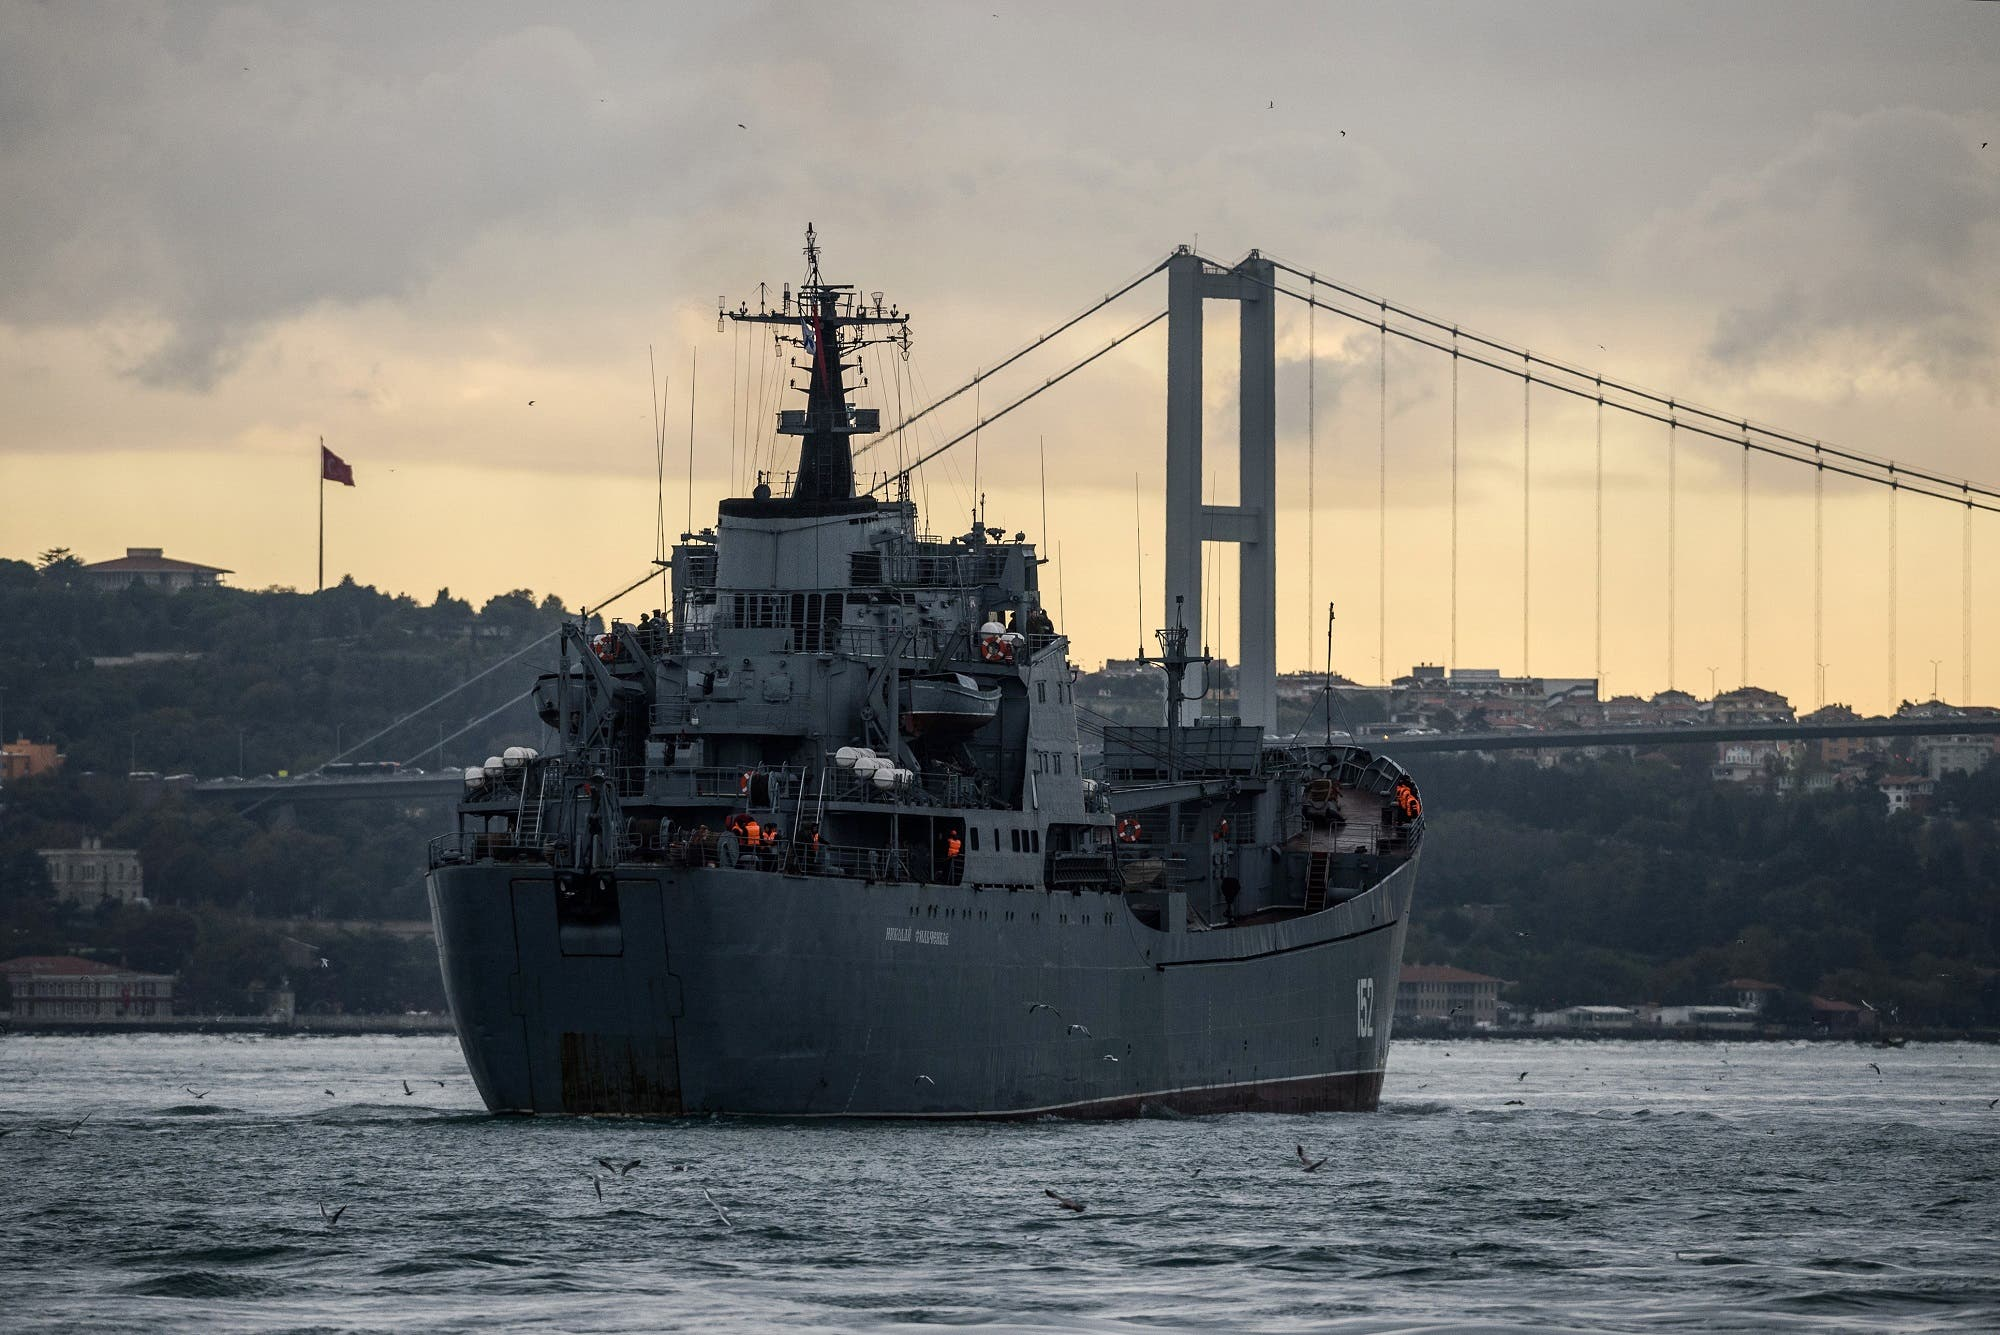 Russian Tapir class landing warship BSF Nikolay Filchenkov 152 passes the Bosphorus Strait off Istanbul on October 18, 2016, believed to be on its way to the Syrian port city of Tartus. (AFP)